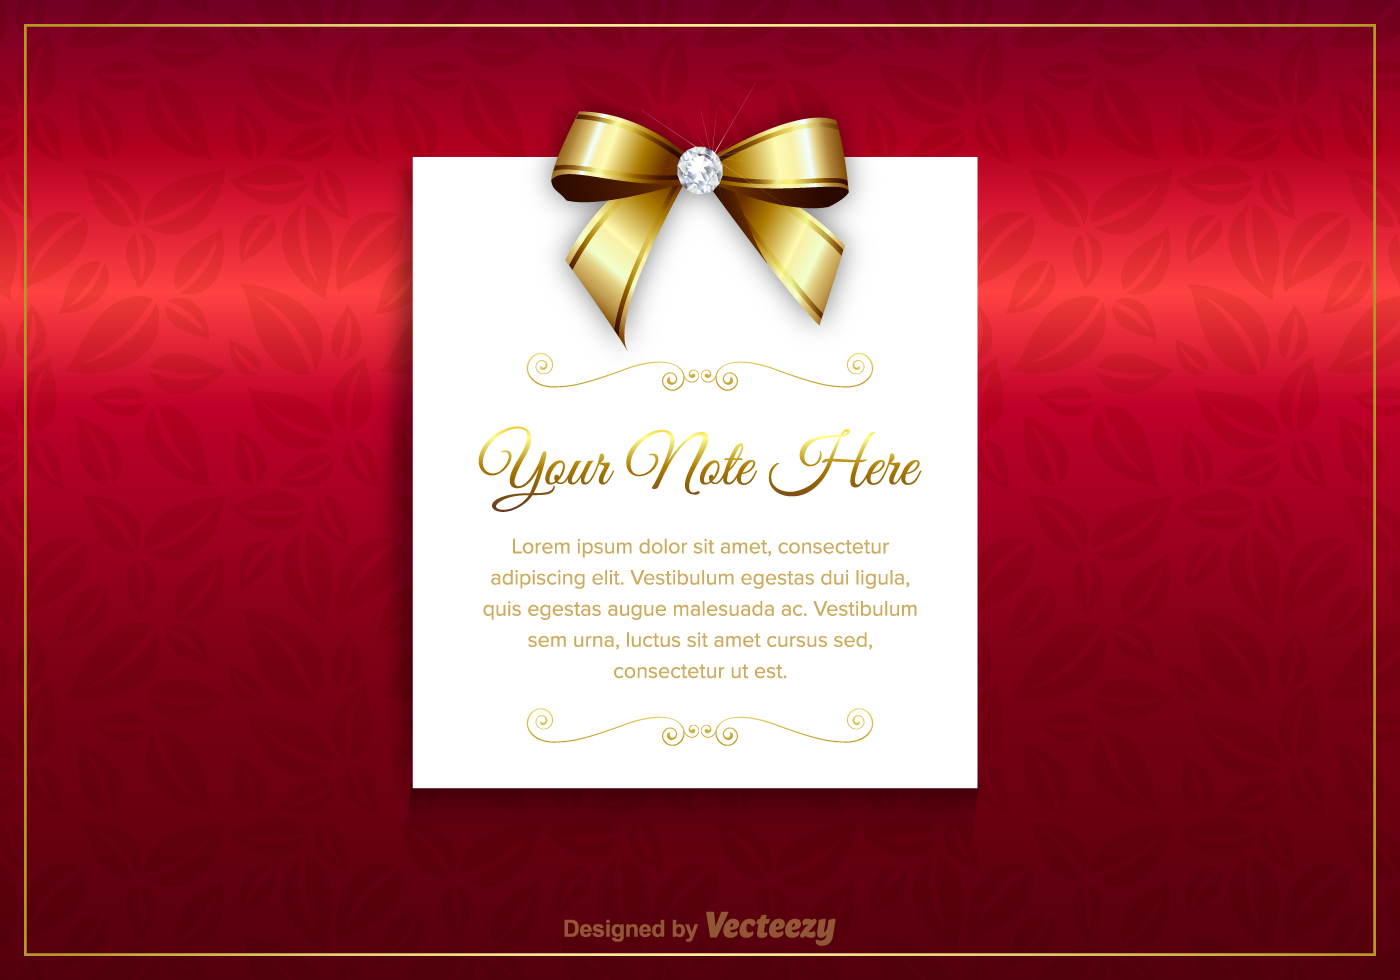 Luxury Vector Card - Download Free Vector Art, Stock Graphics & Images